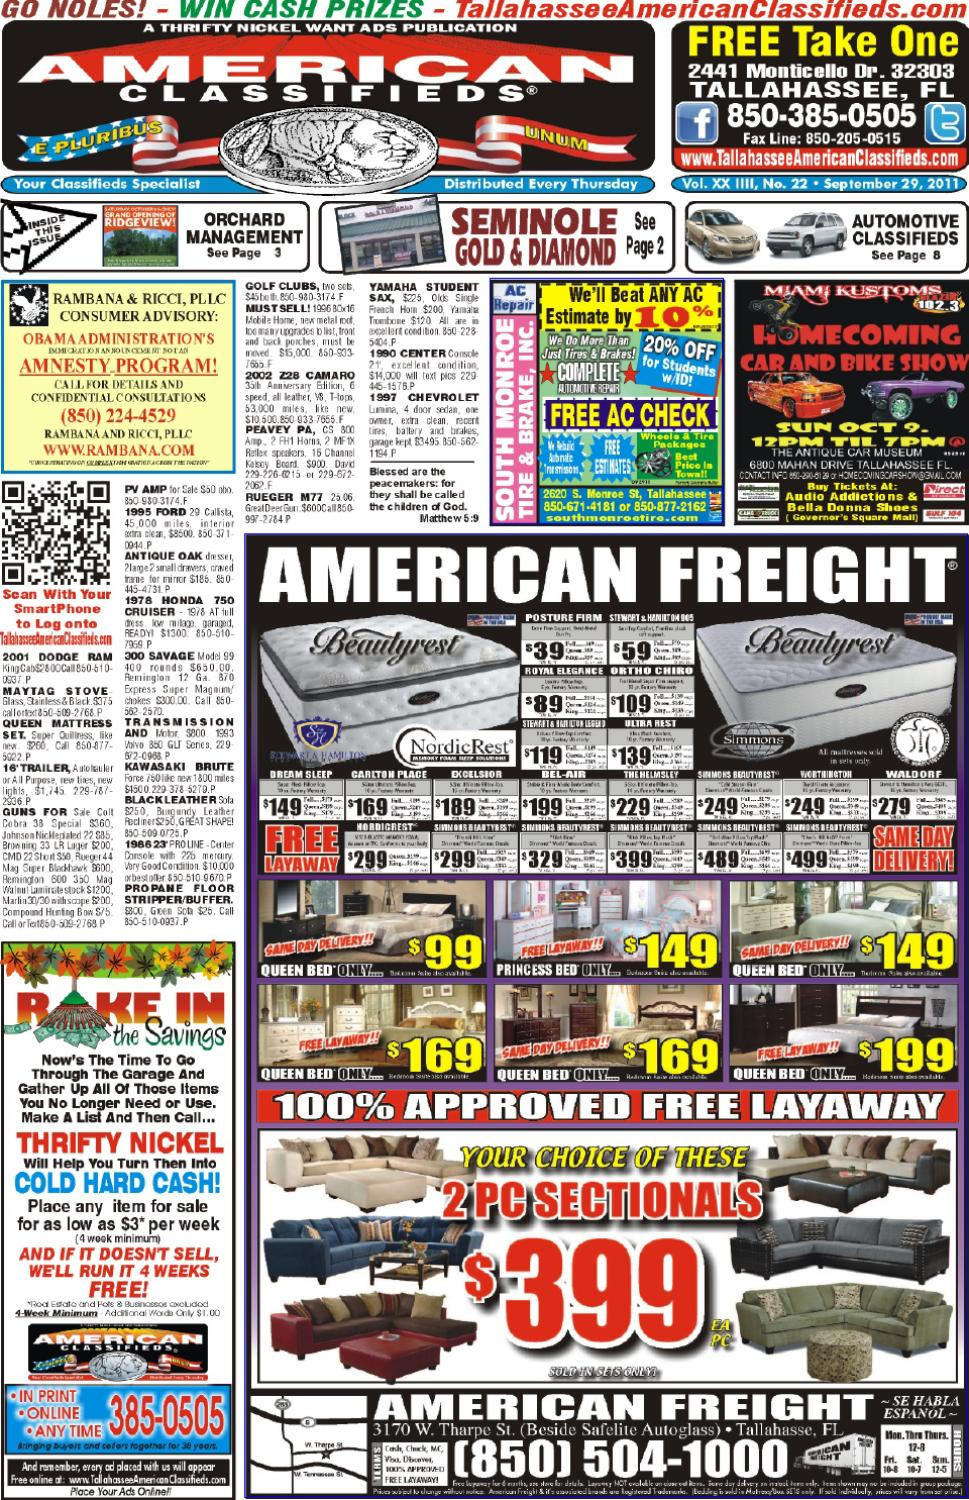 Tallahassee american classifieds issue 09 29 11 by - Craigslist tallahassee farm and garden ...